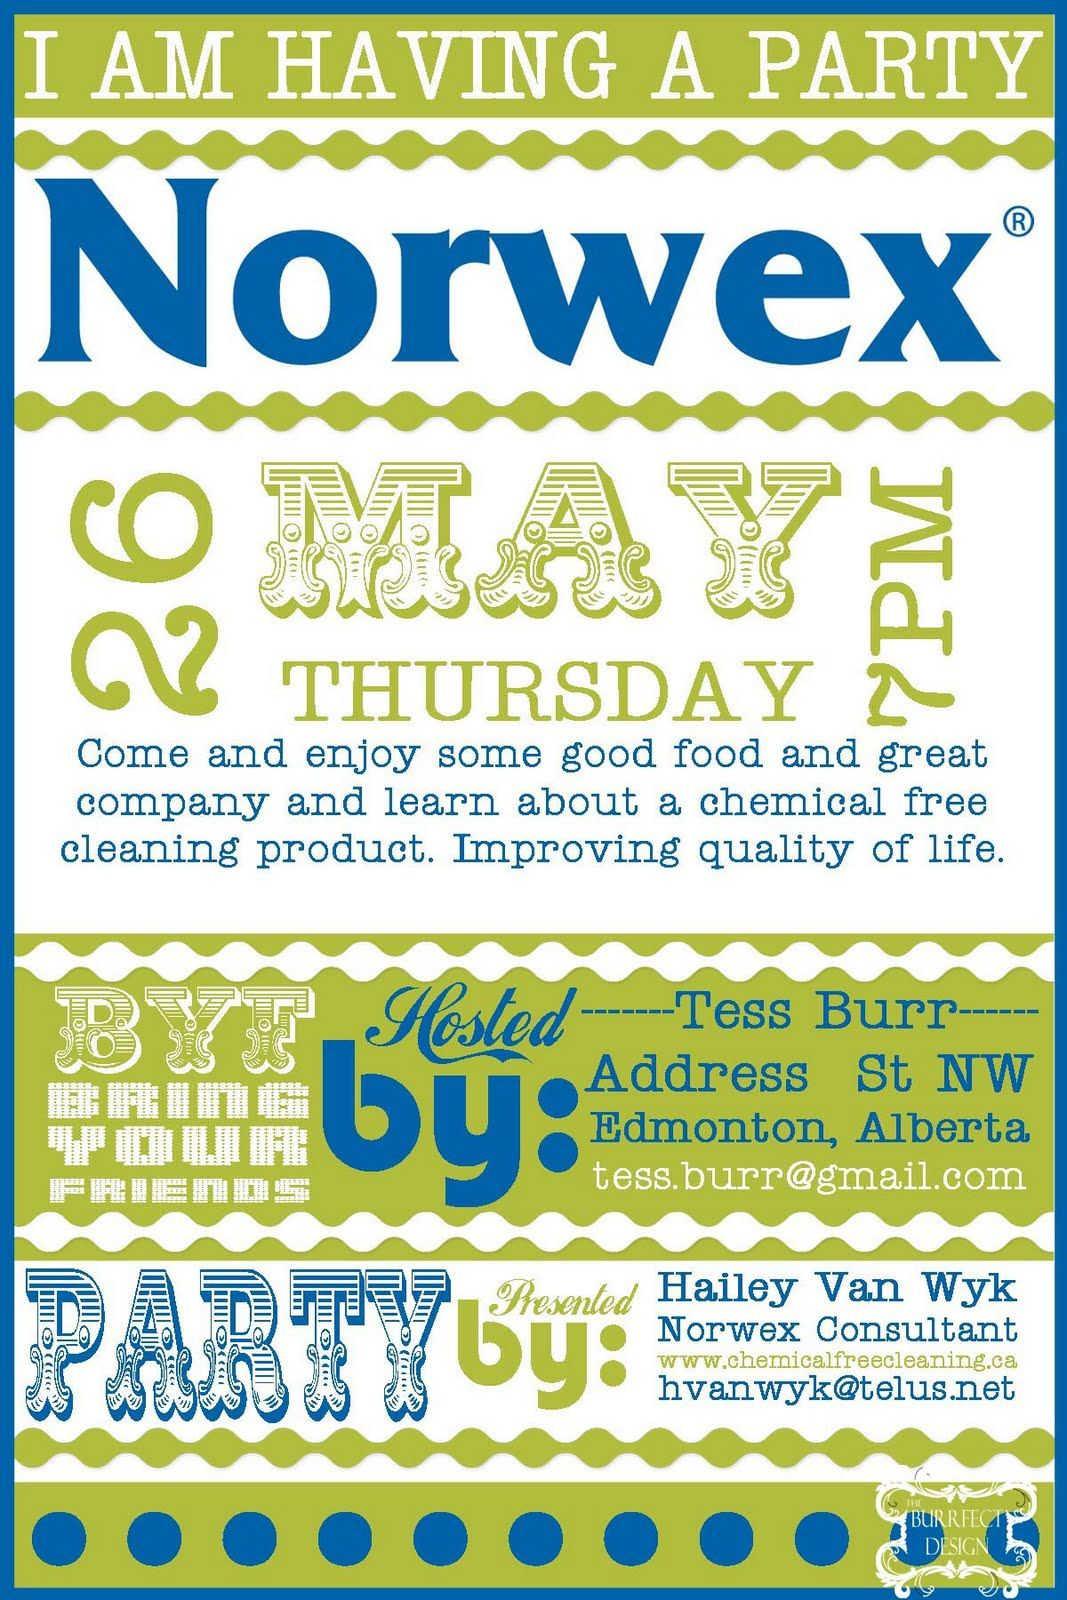 Norwex Party Invitation As An Extra Ideas About How To Make ...